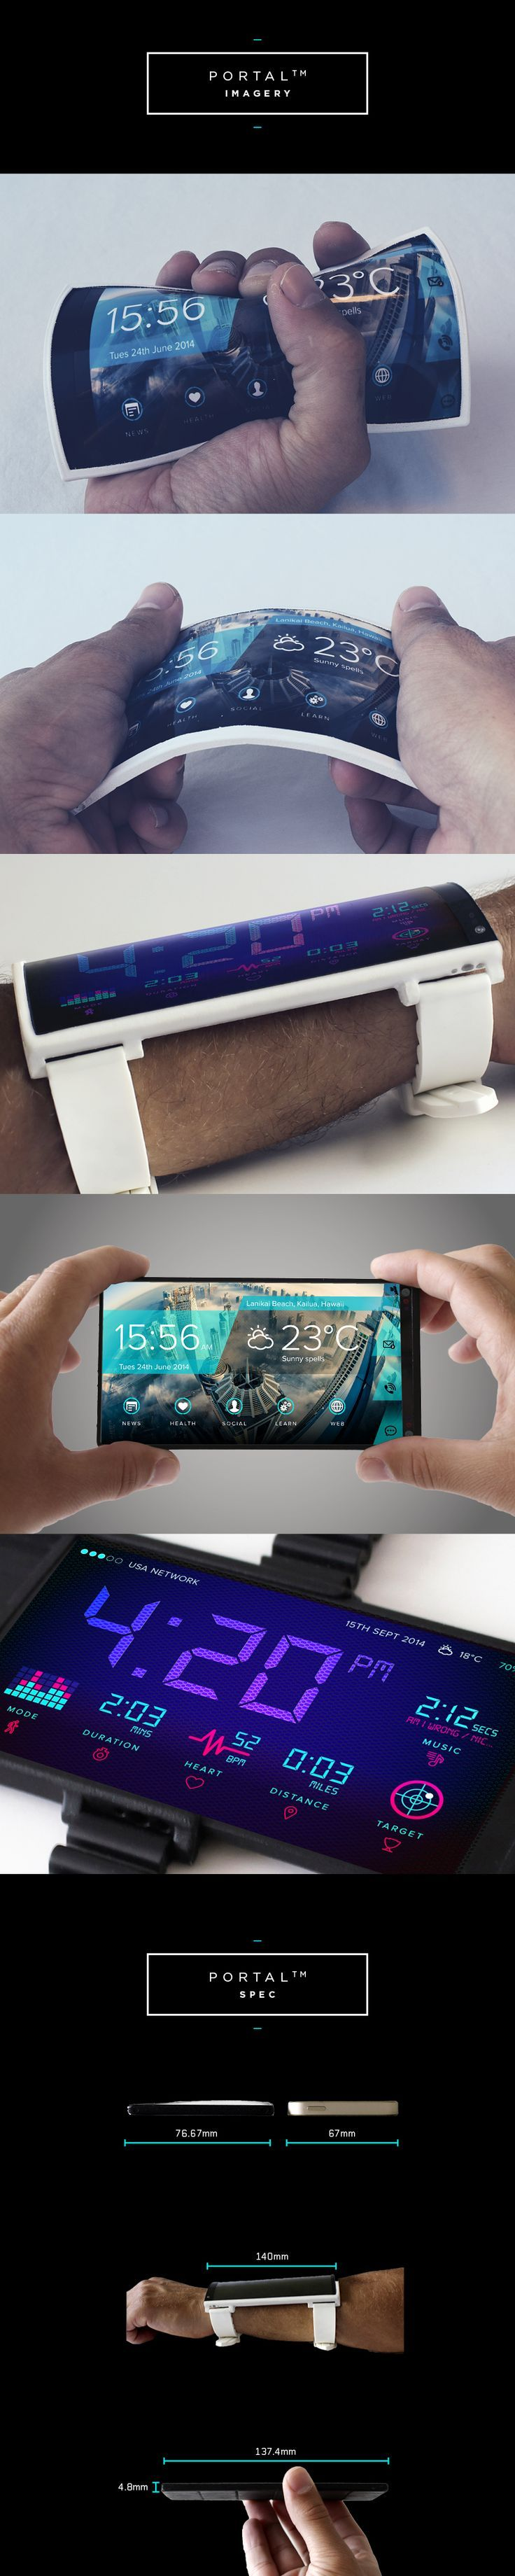 Portal Wearable Smartphone DisruptOverload | Indiegogo #technology